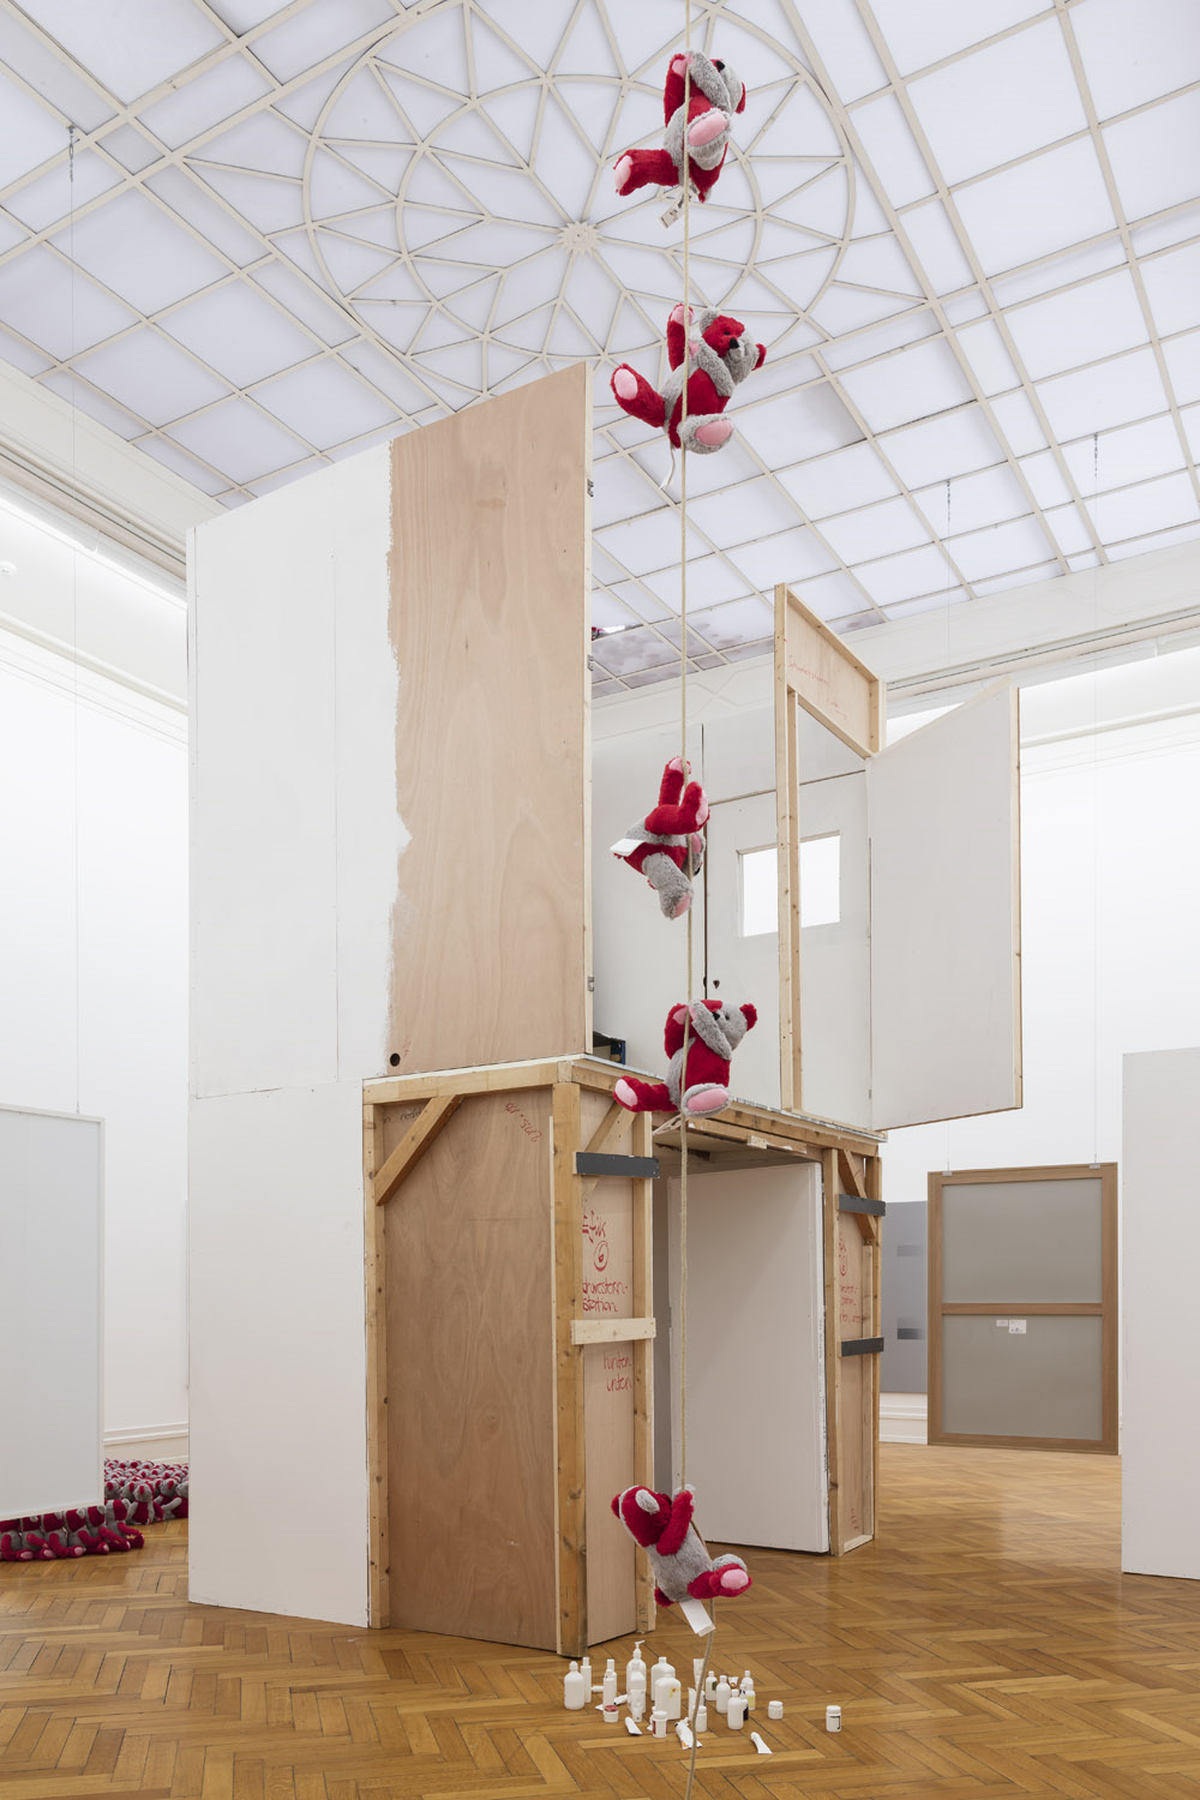 Independence At Kunsthalle Bern Art Viewer